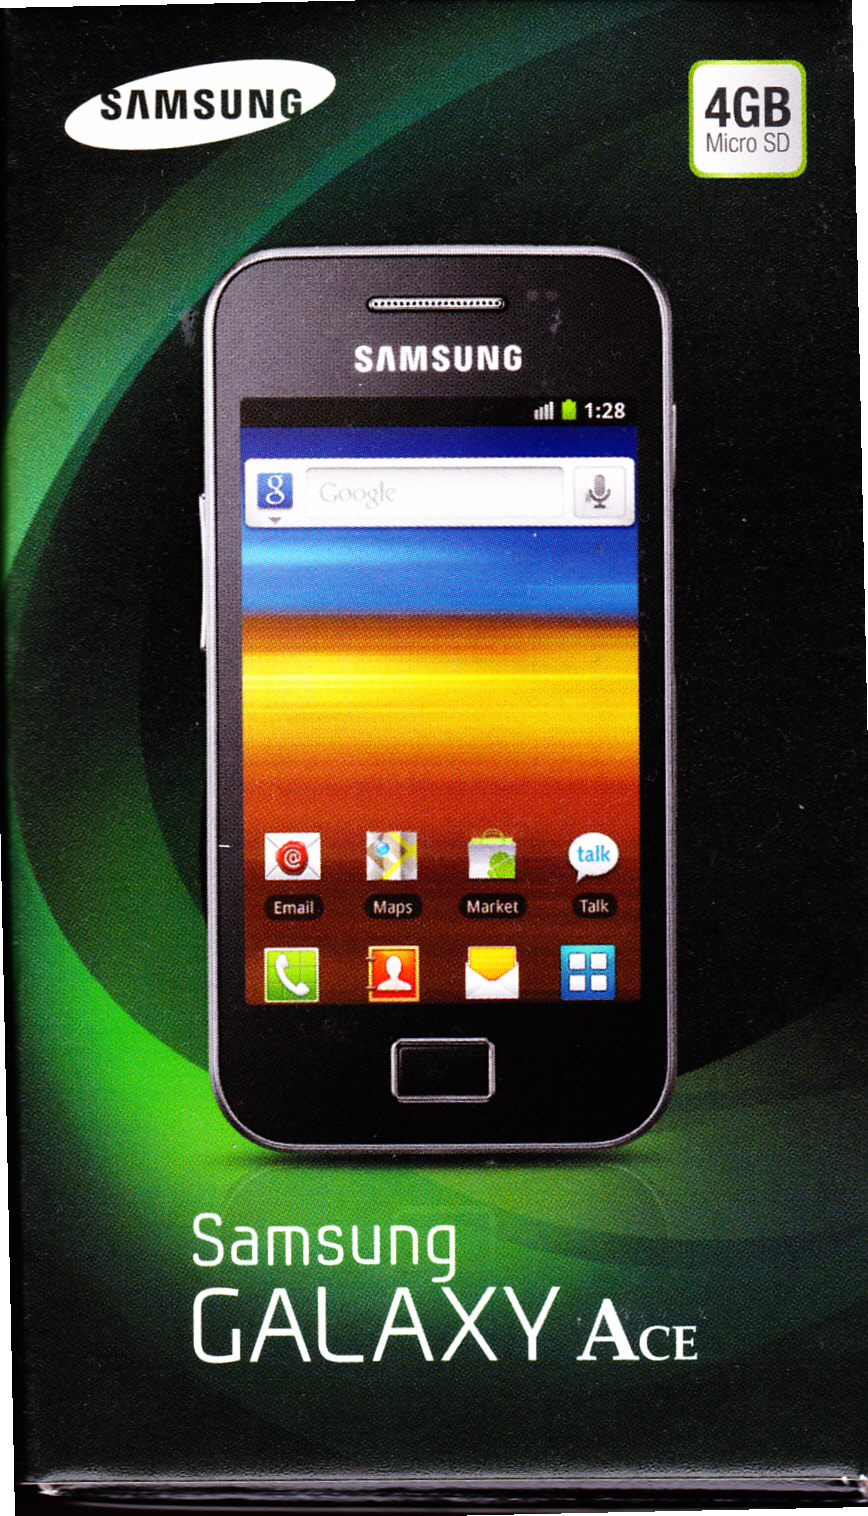 Download whatsapp messenger for samsung galaxy ace gt s5830i